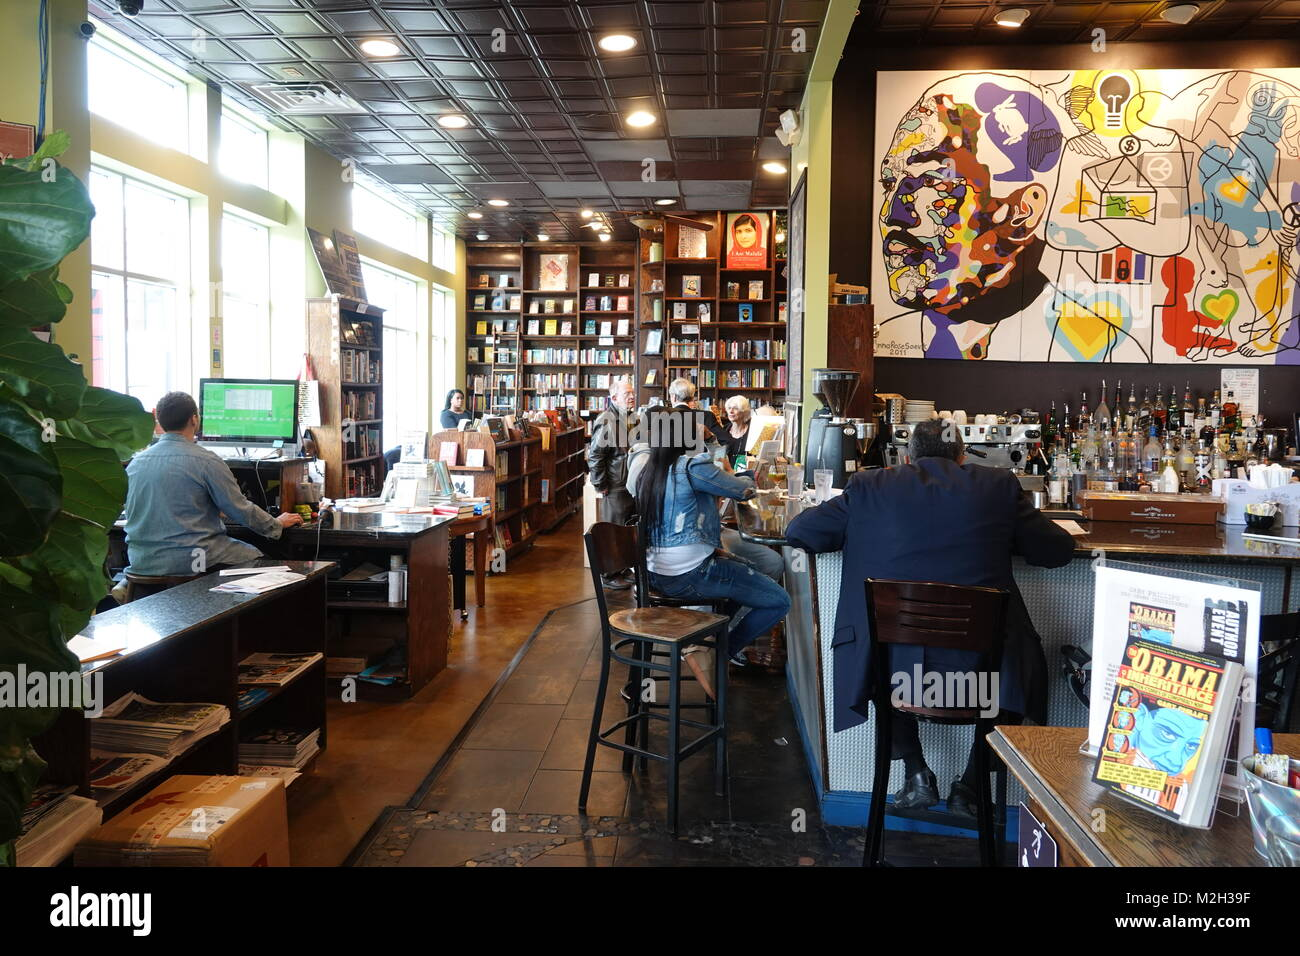 usa-washington-dc-food-busboys-and-poets-restaurant-bar-cafe-and-bookstore-M2H39F.jpg